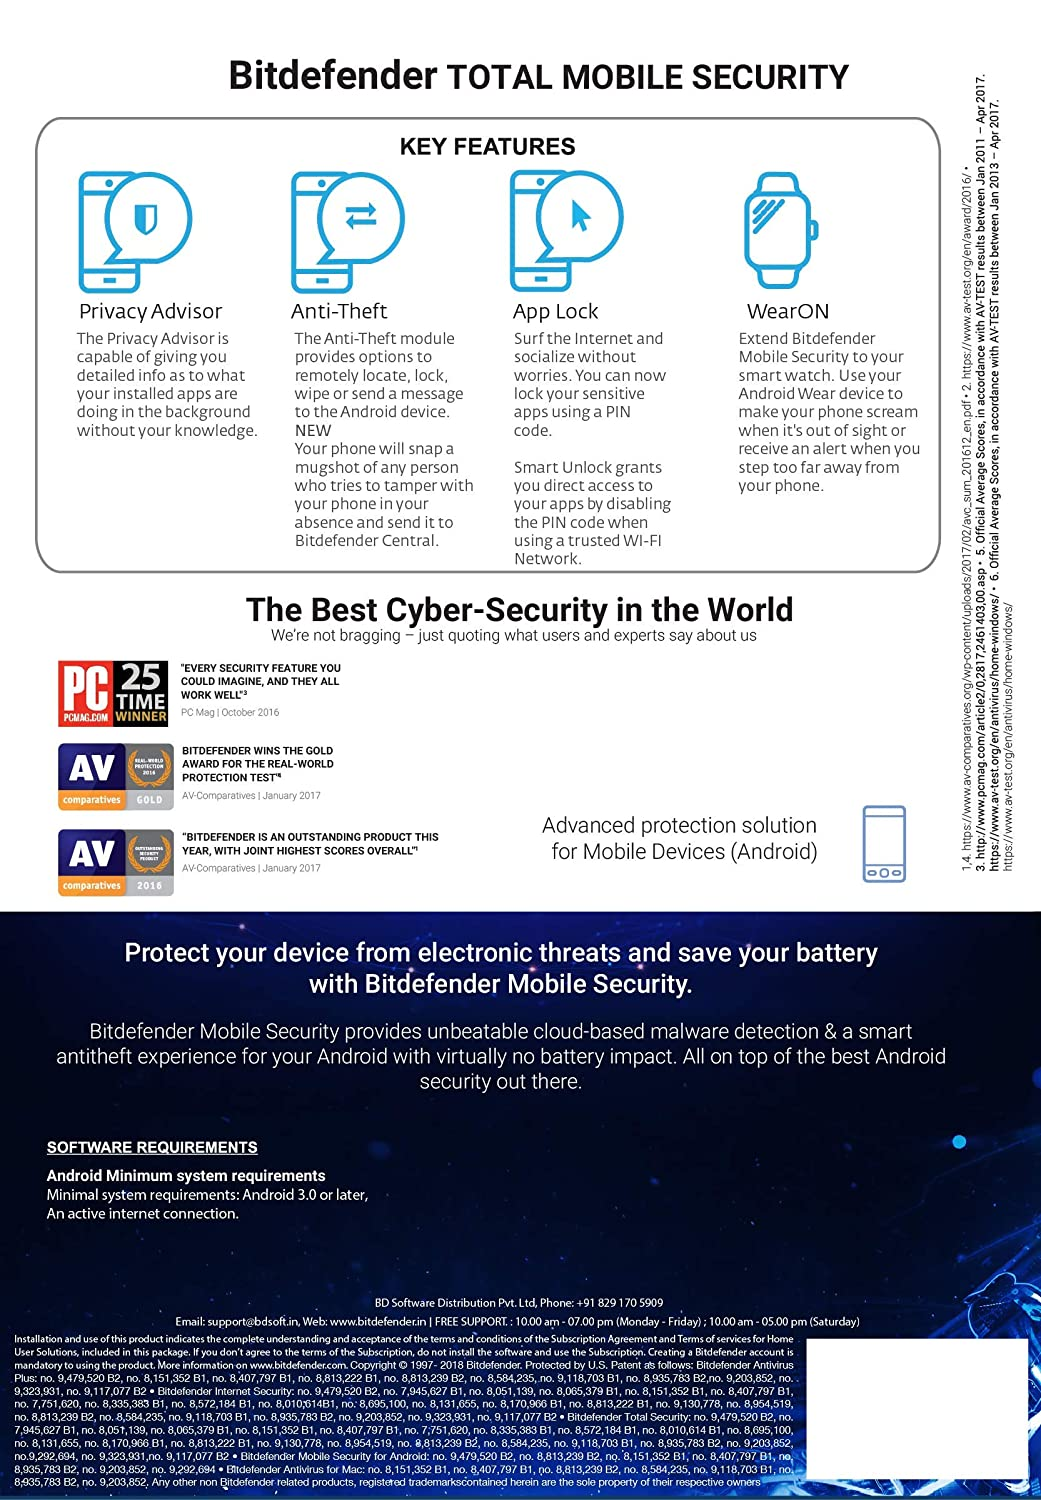 bitdefender mobile security for android full version free download